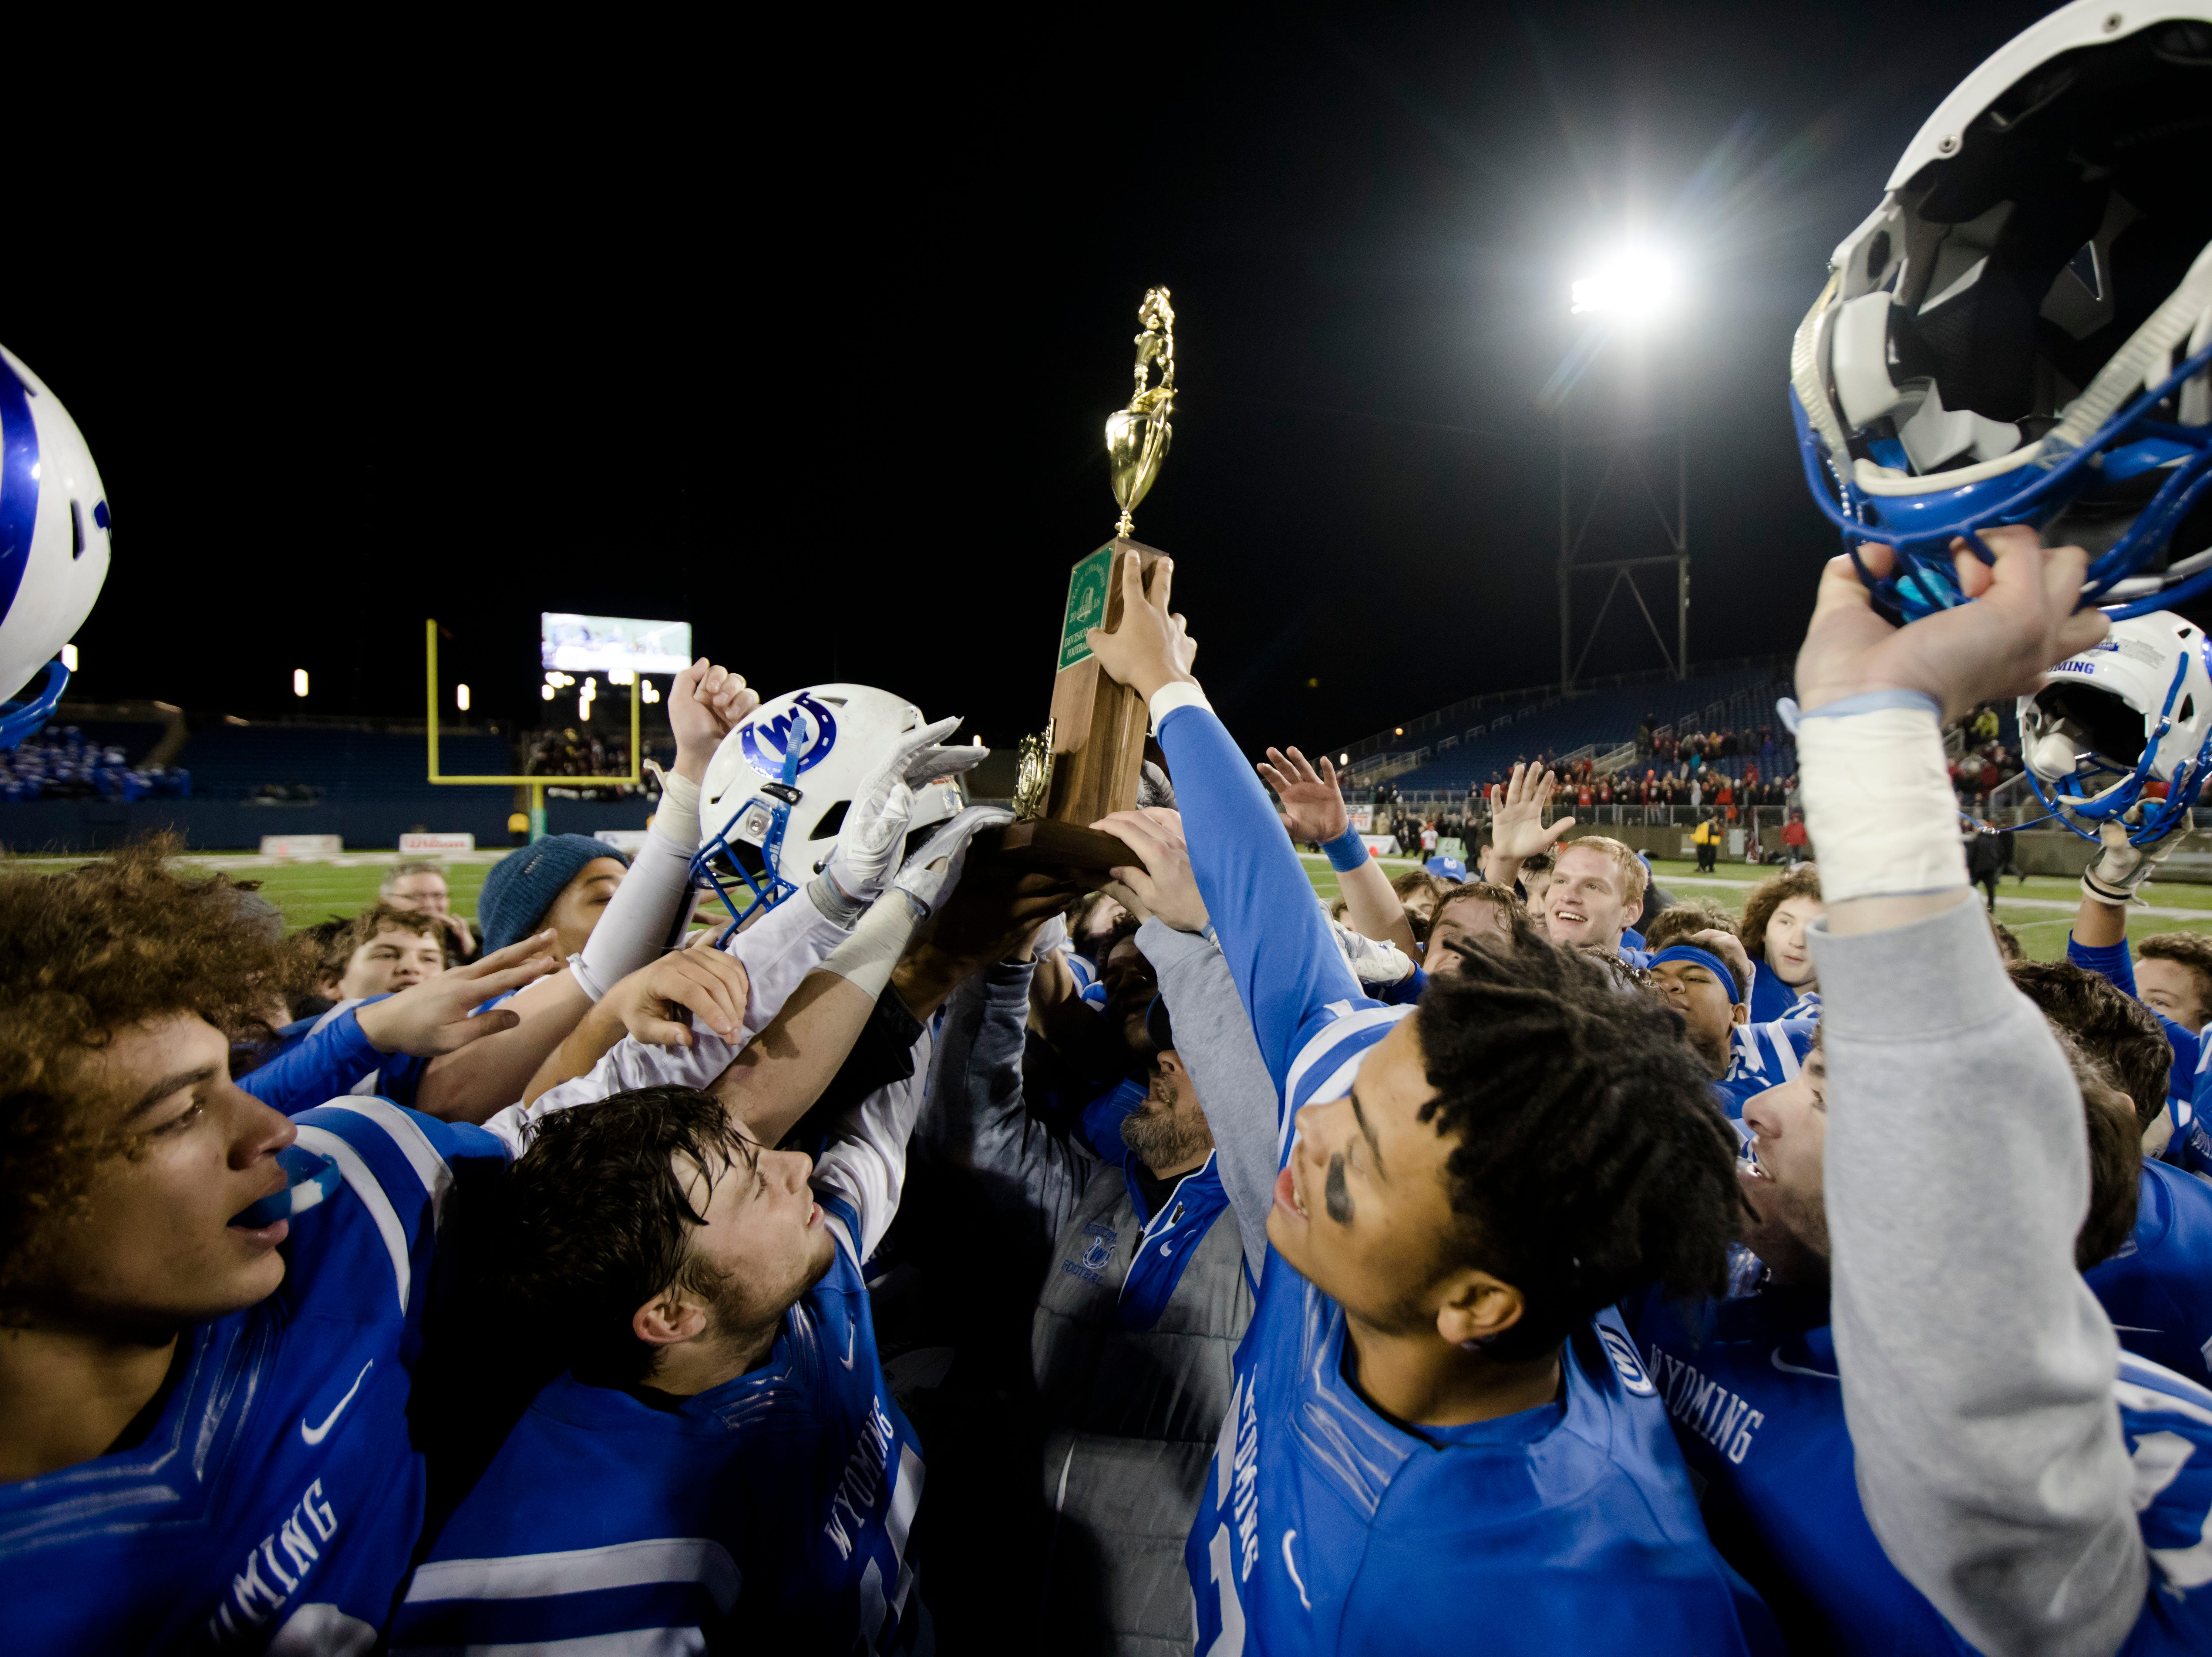 Wyoming head coach Aaron Hancock lifts the OHSAA Division IV State Championship football trophy on Saturday, Dec. 1, 2018, at Tom Benson Stadium in Canton. Wyoming defeated Girard 42-14.